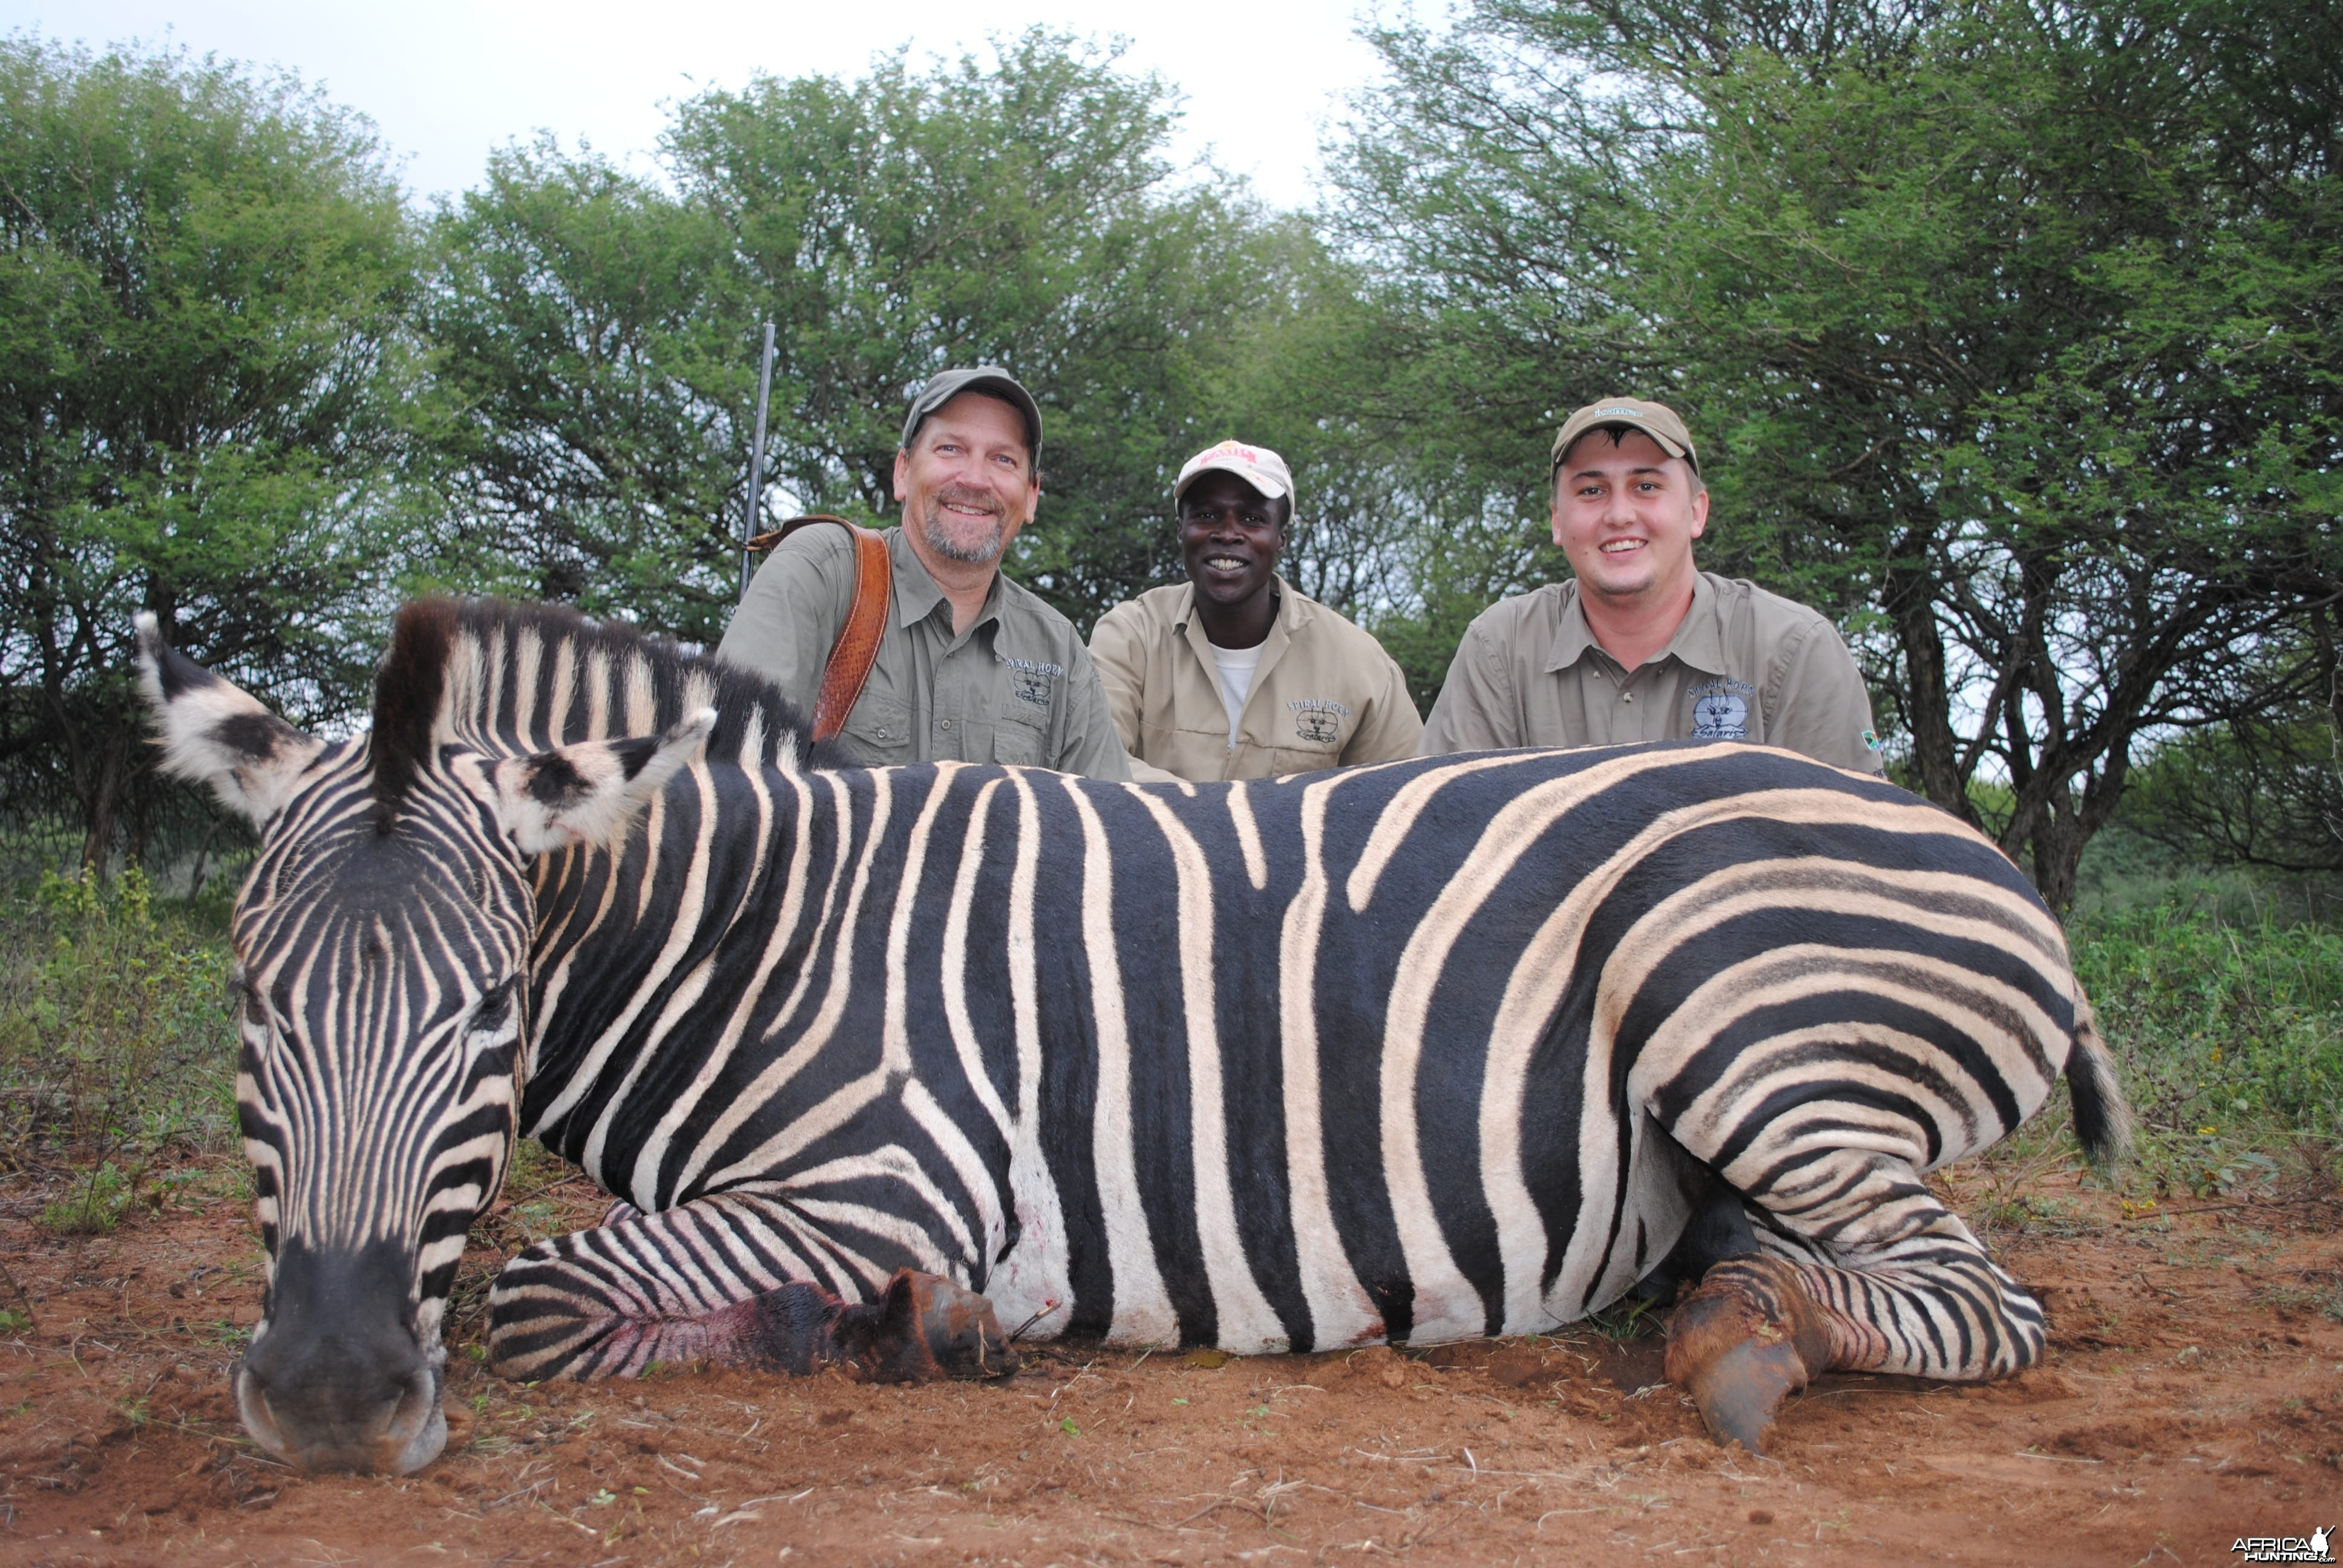 Burchells Zebra hunt Spiral Horn Safaris, South Africa